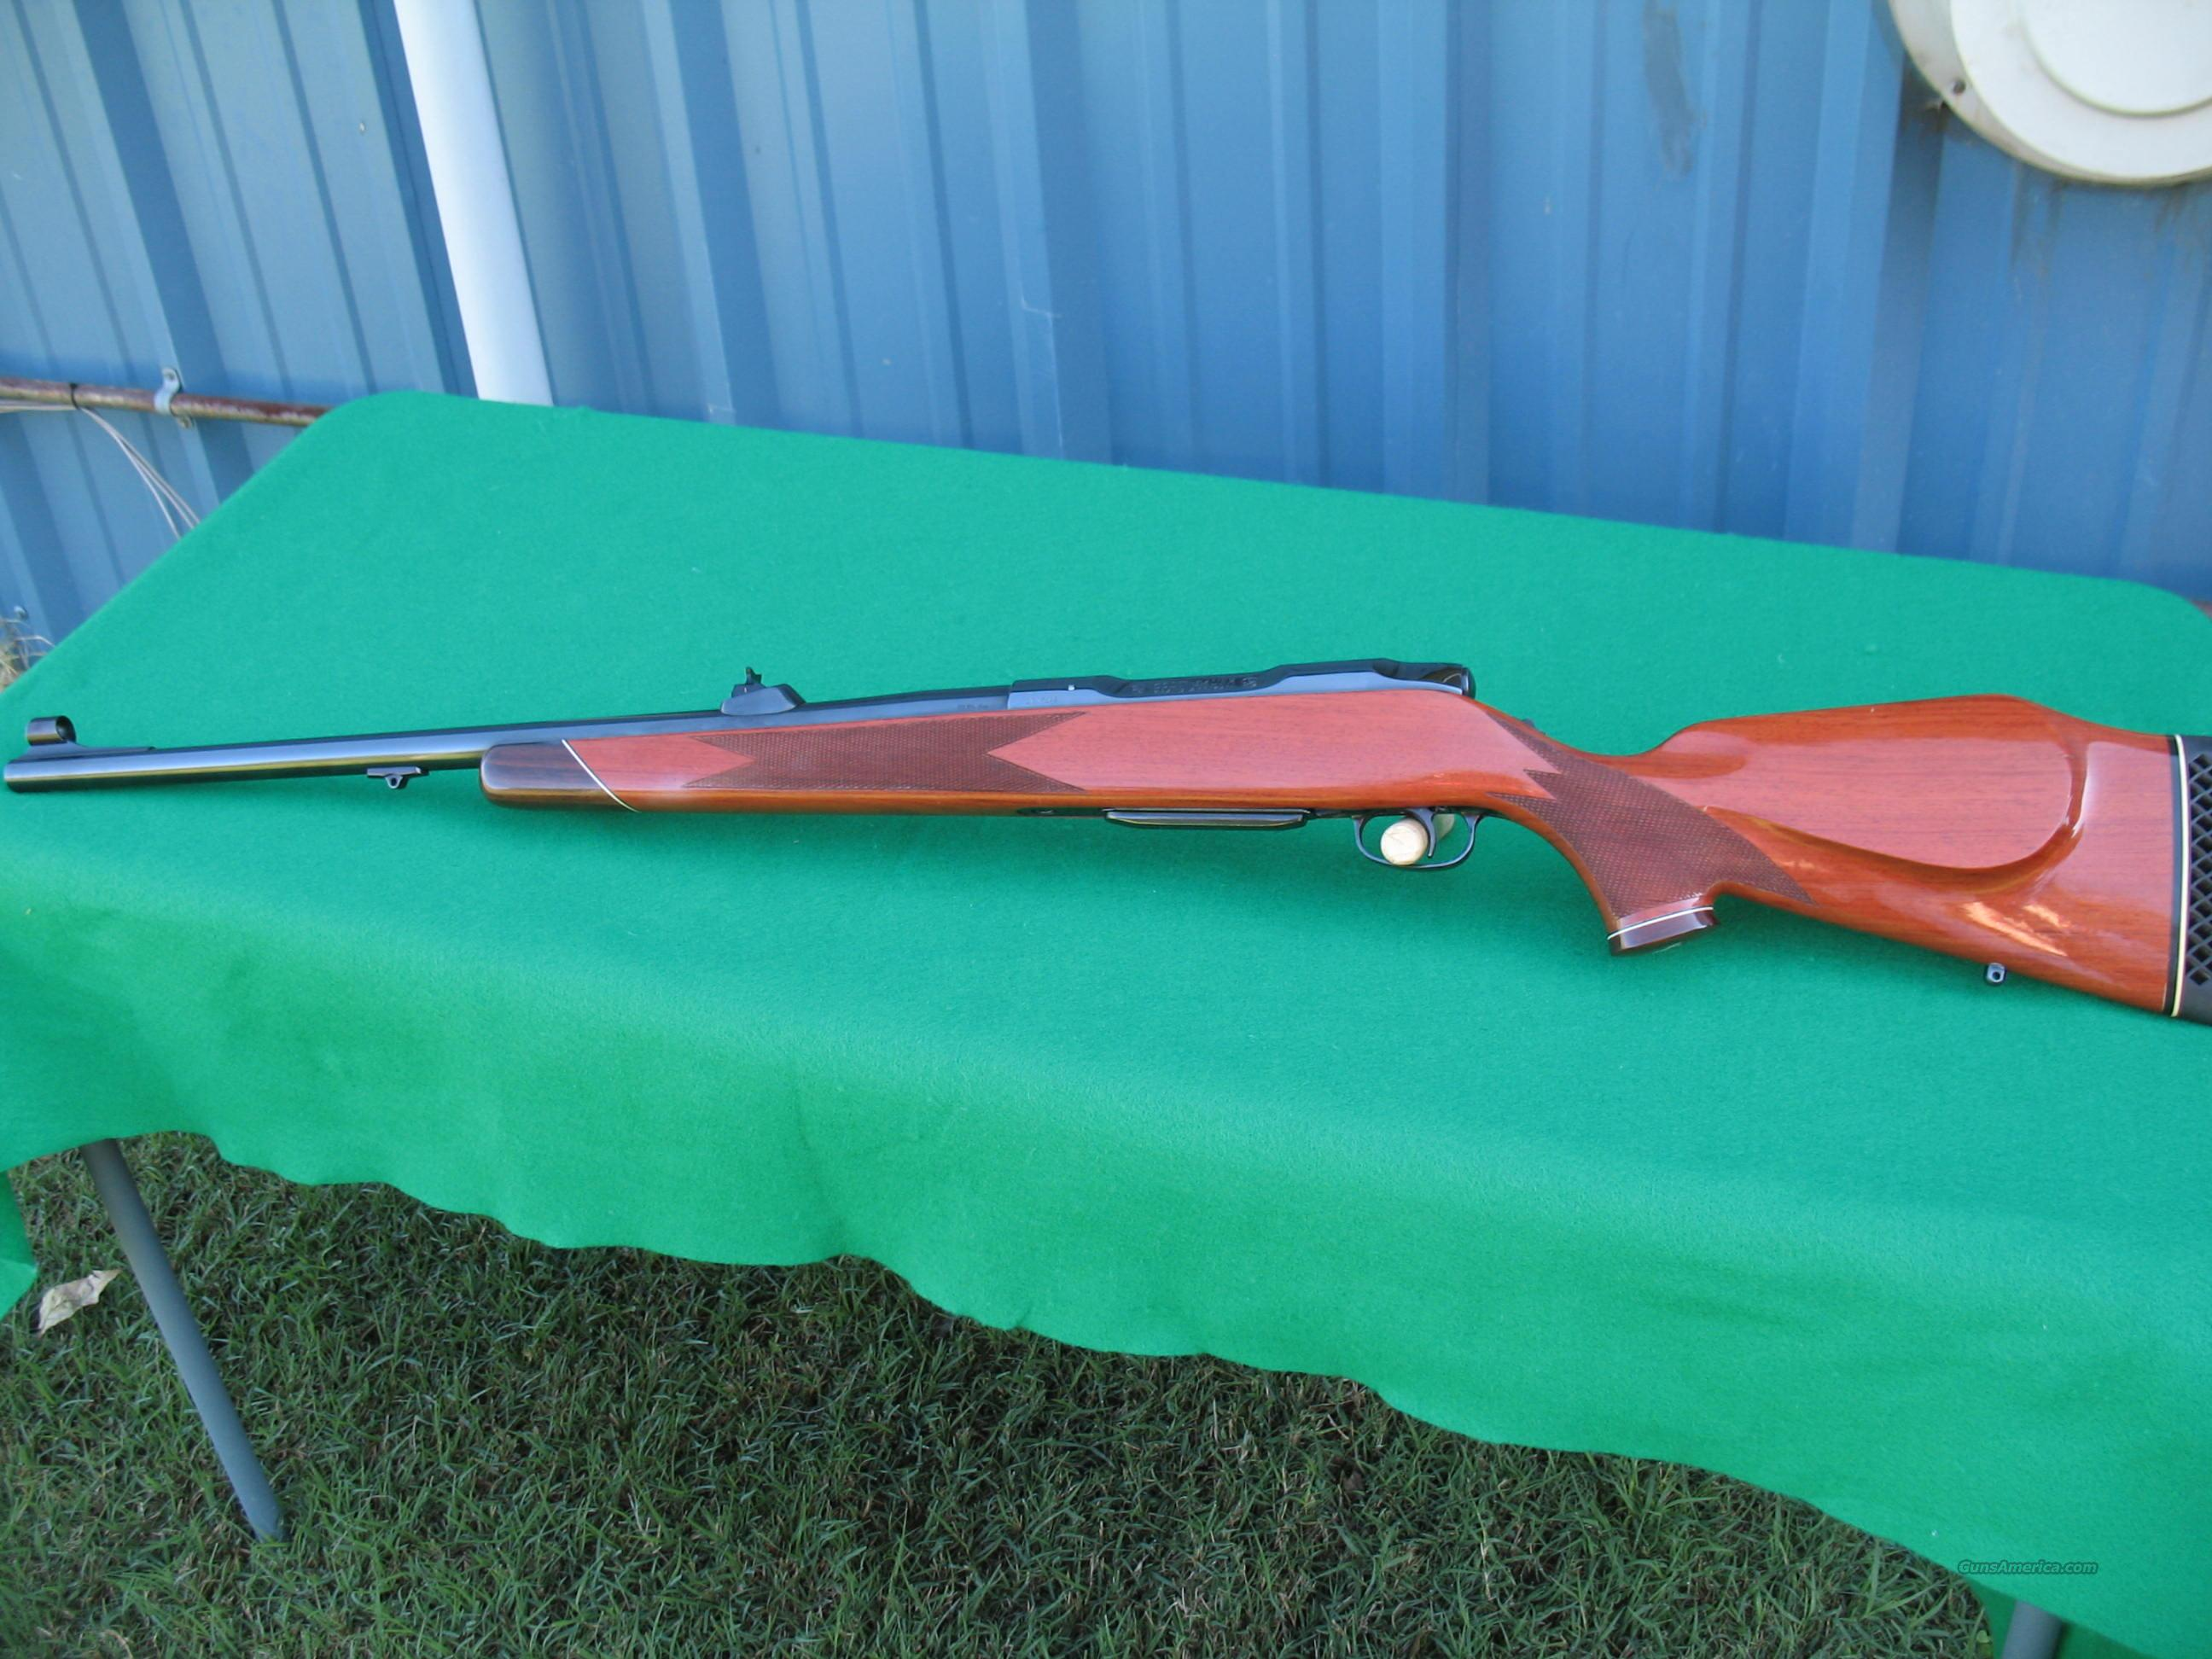 COLT SAUER GRAND AFRICAN 458 WIN.MAG. RIFLE  Guns > Rifles > Colt Rifles - Non-AR15 Modern Rifles